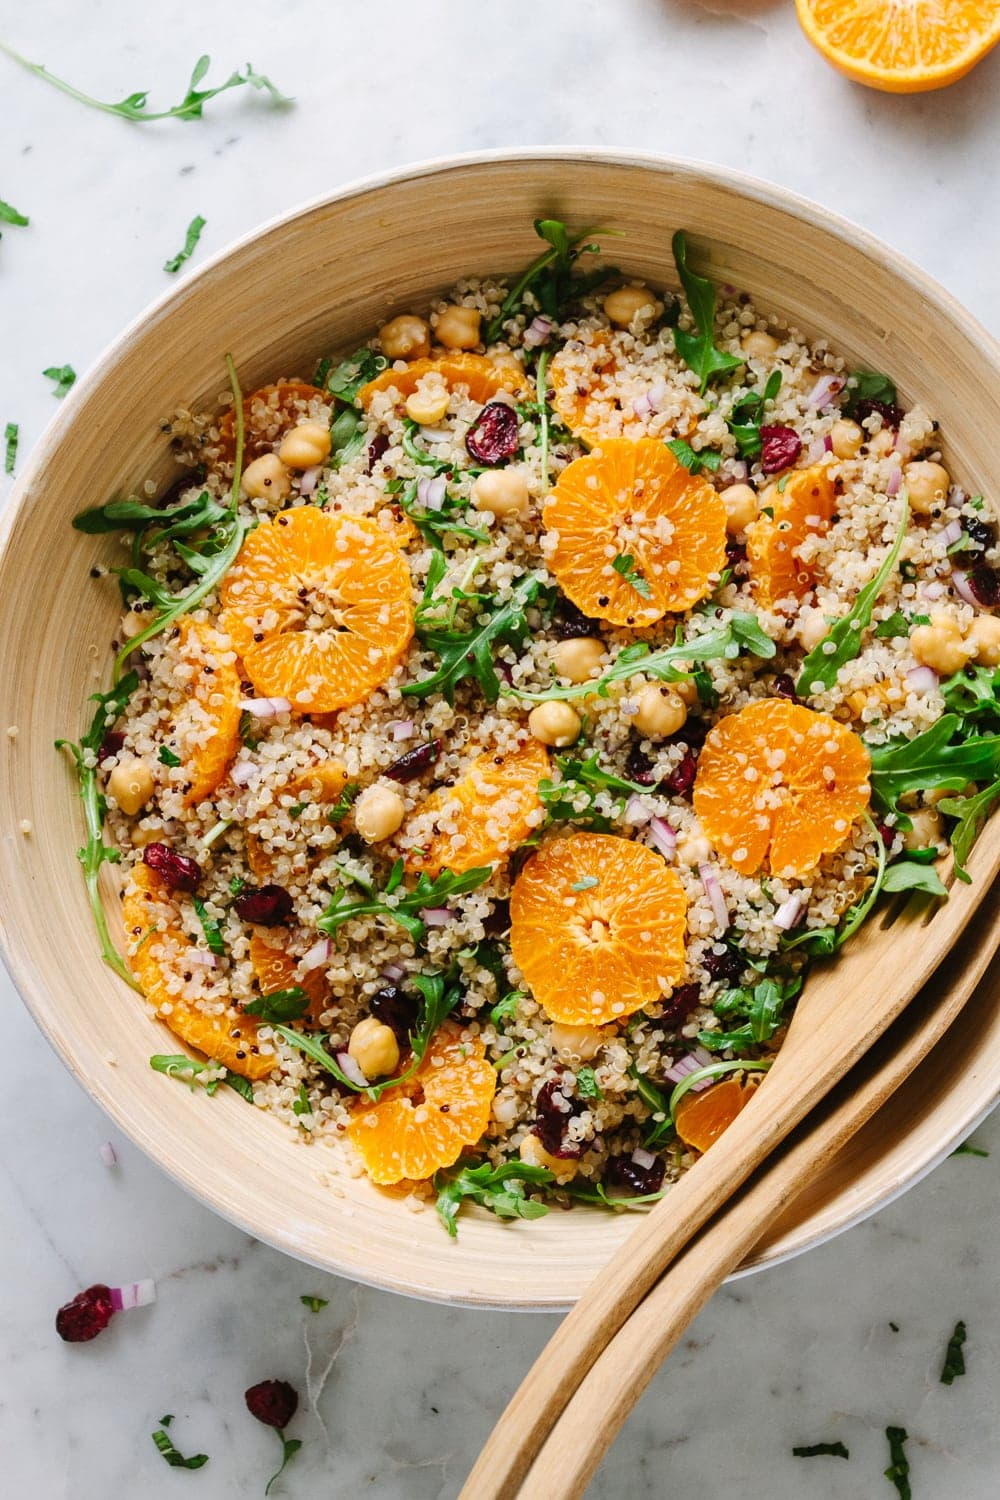 top down view of quinoa salad with orange, cranberry and mint freshly tossed and ready to serve.